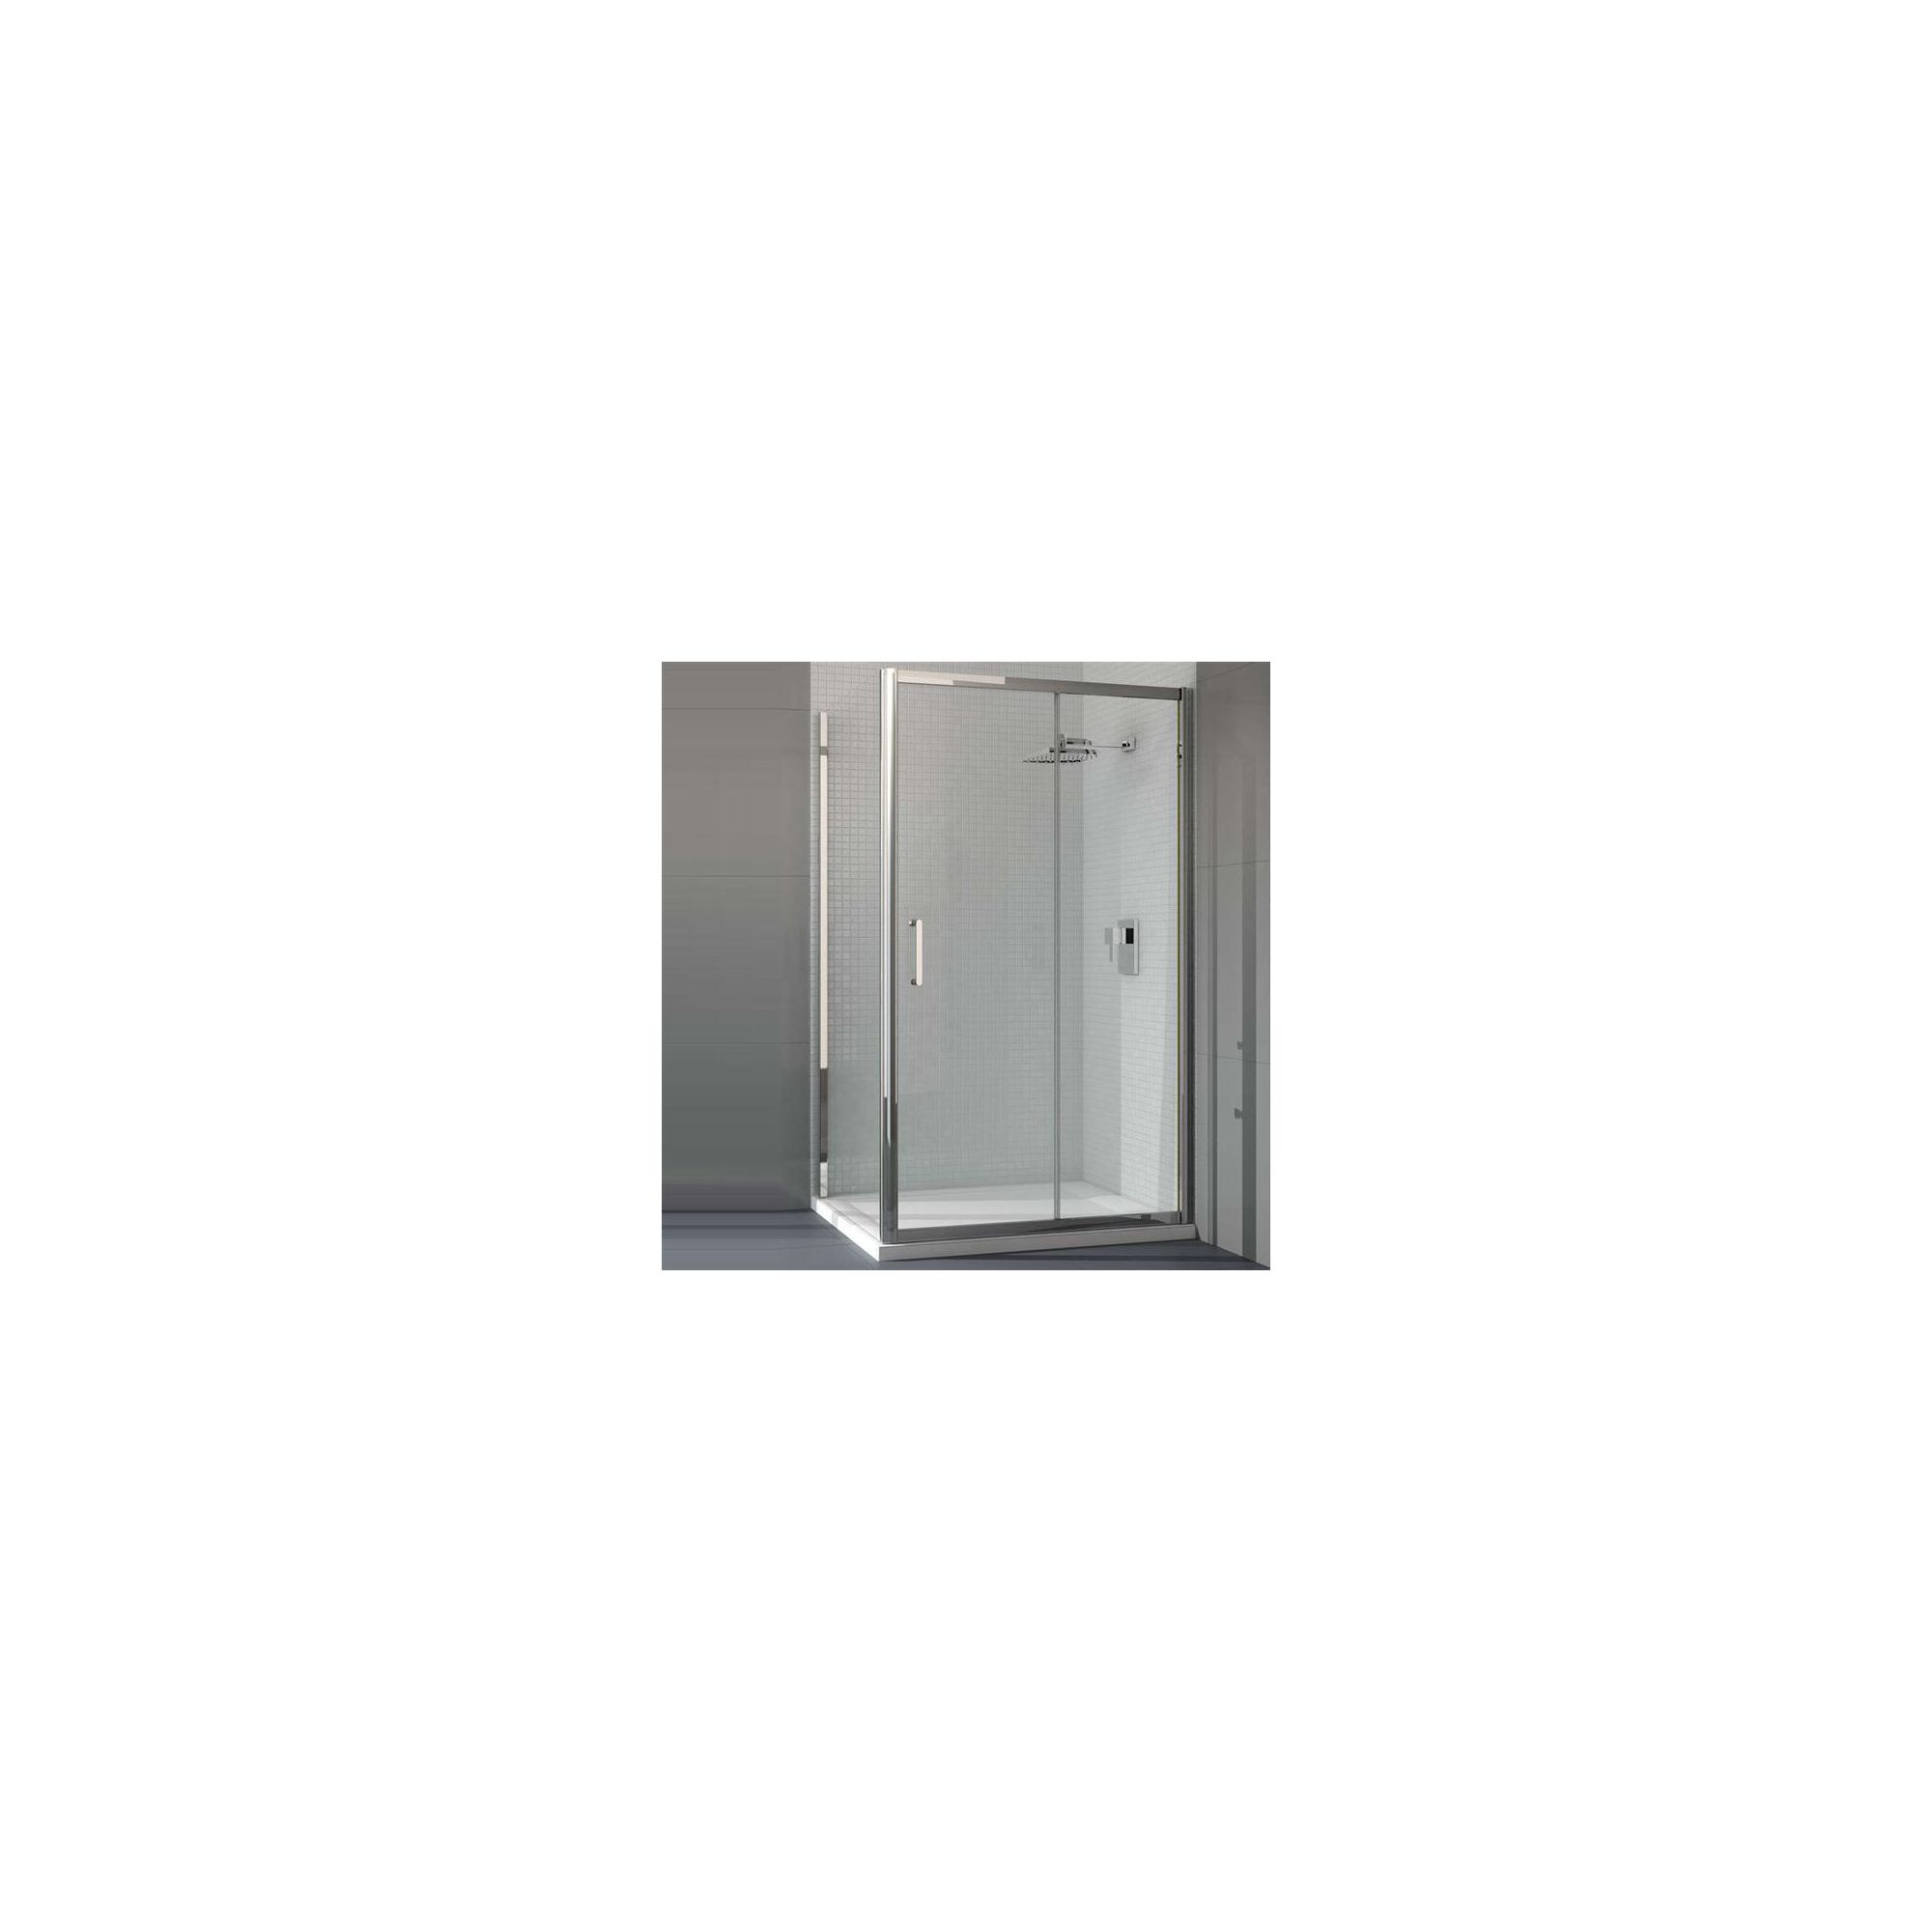 Merlyn Vivid Six Sliding Door Shower Enclosure, 1500mm x 800mm, Low Profile Tray, 6mm Glass at Tesco Direct